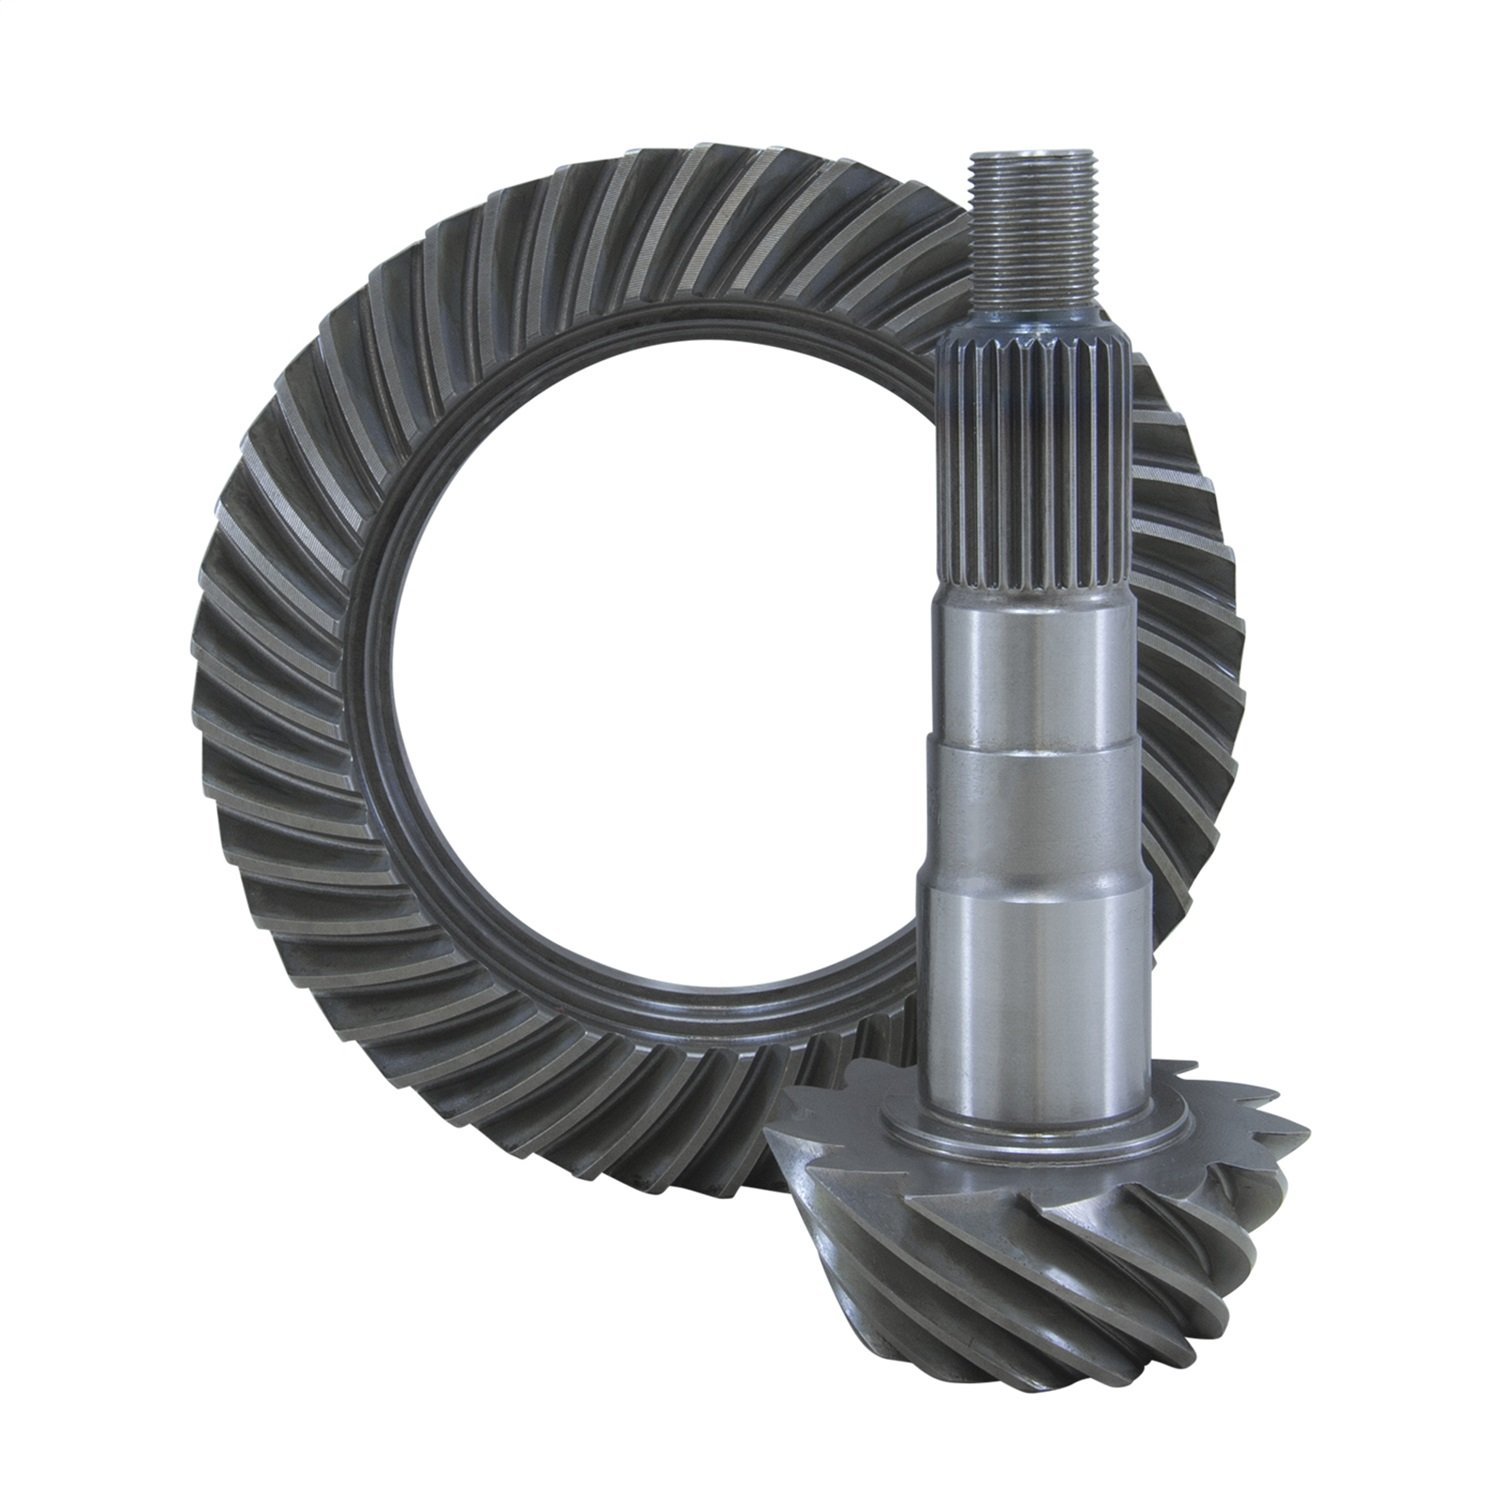 USA Standard Gear (ZG D30S-411TJ) Replacement Ring and Pinion Gear Set for Jeep TJ Dana 30 Short Pinion Differential